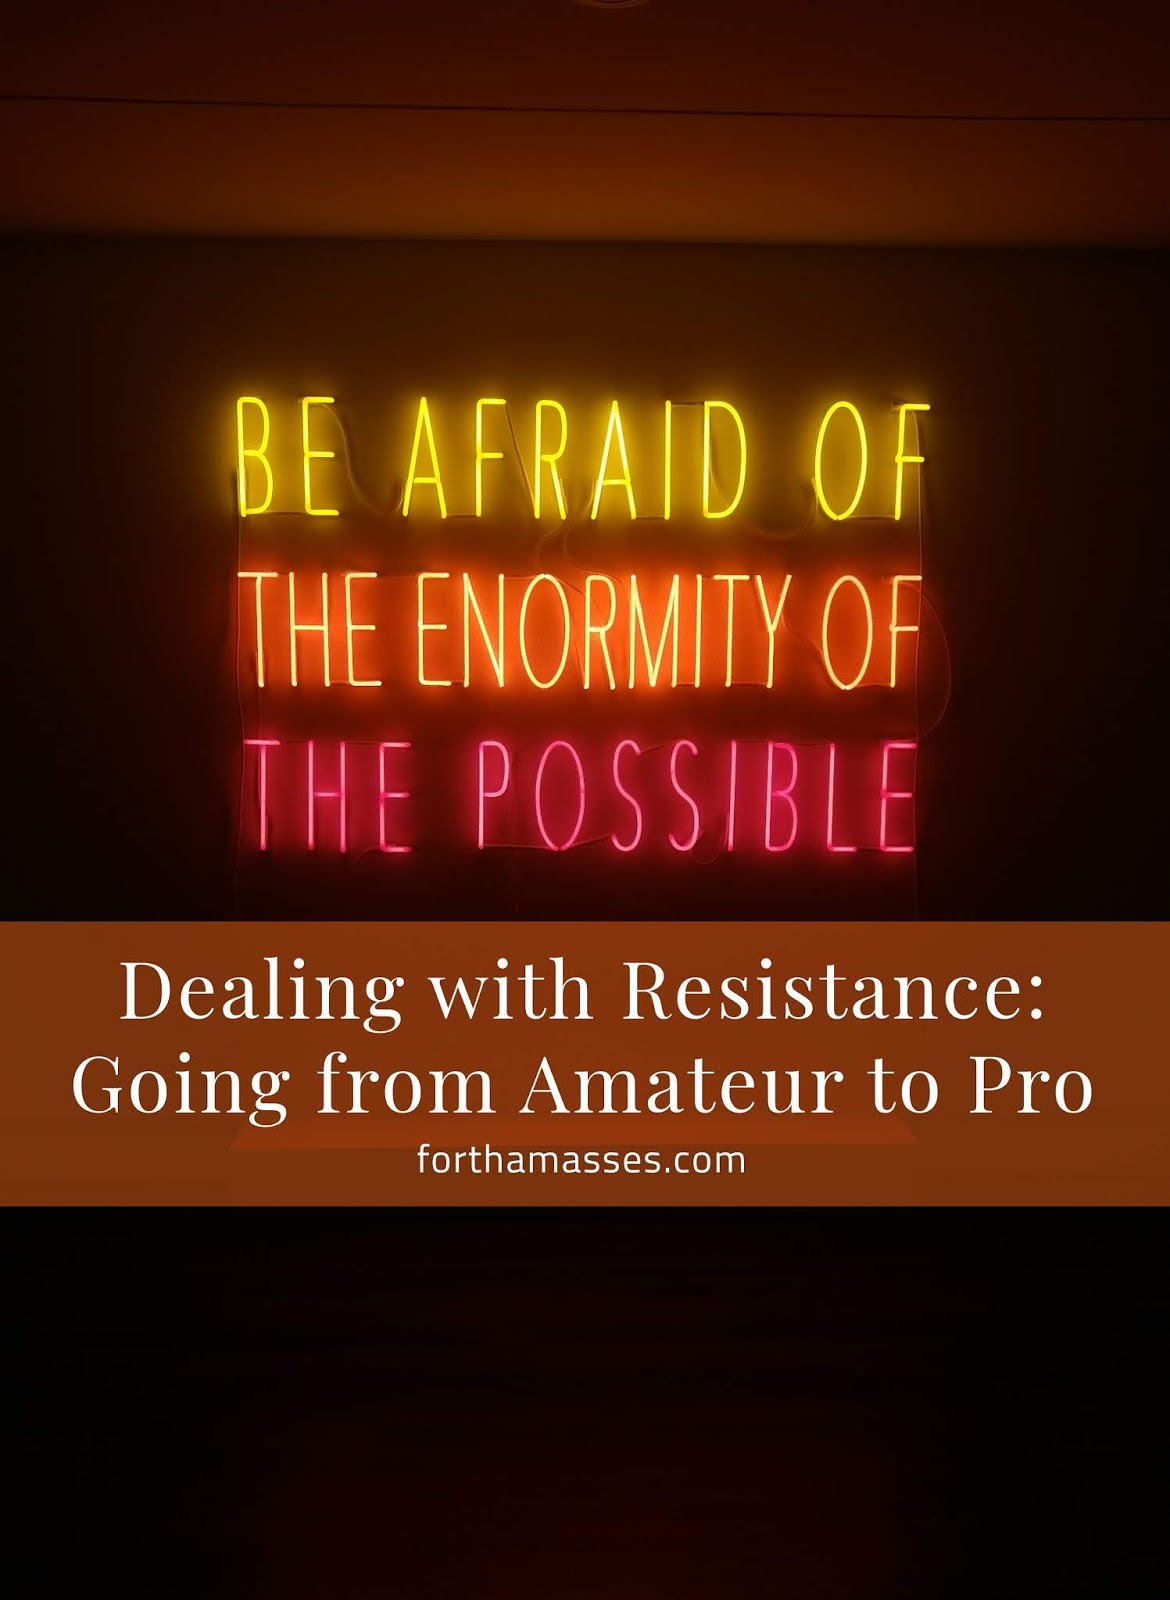 Dealing with Resistance: Going from Amateur to Pro